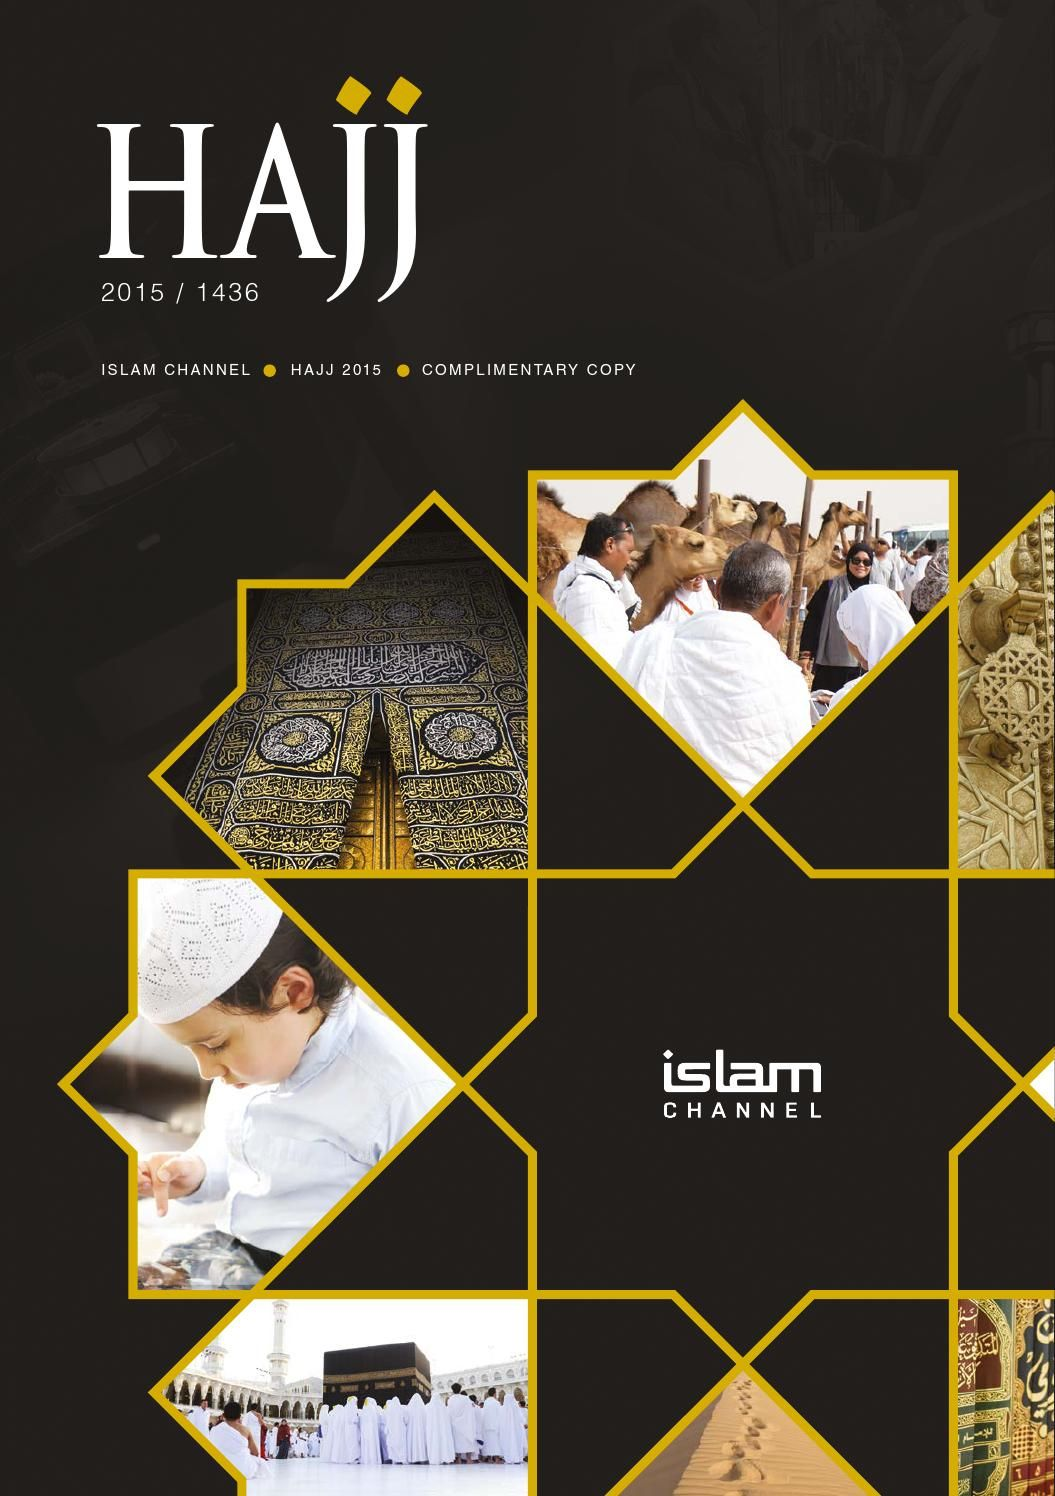 Islam Channel Hajj Brochure 2015 Islamic Graphic